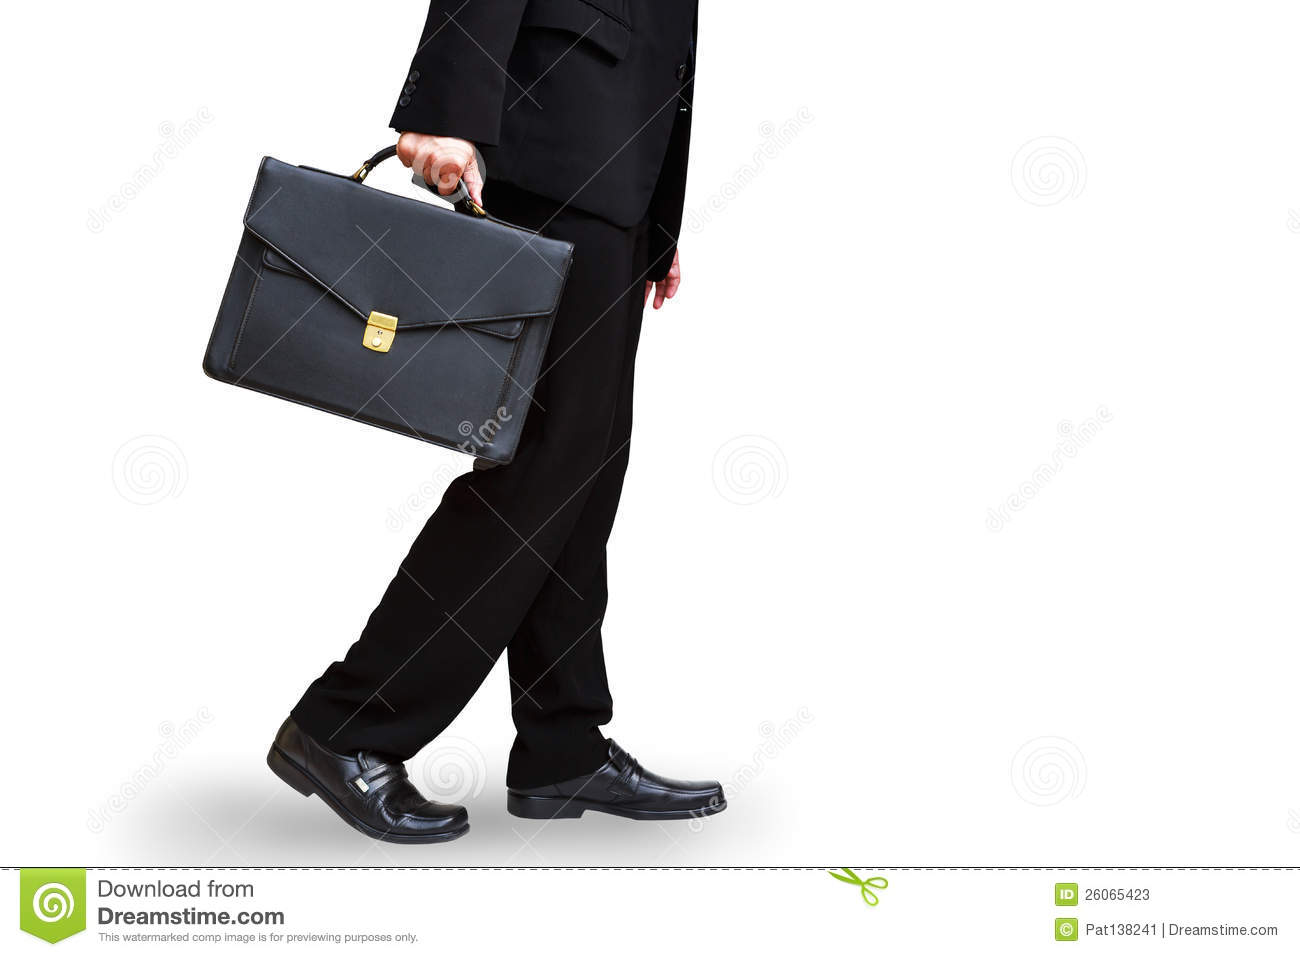 9 Business Stock Photos Of People Holding Briefcase Images